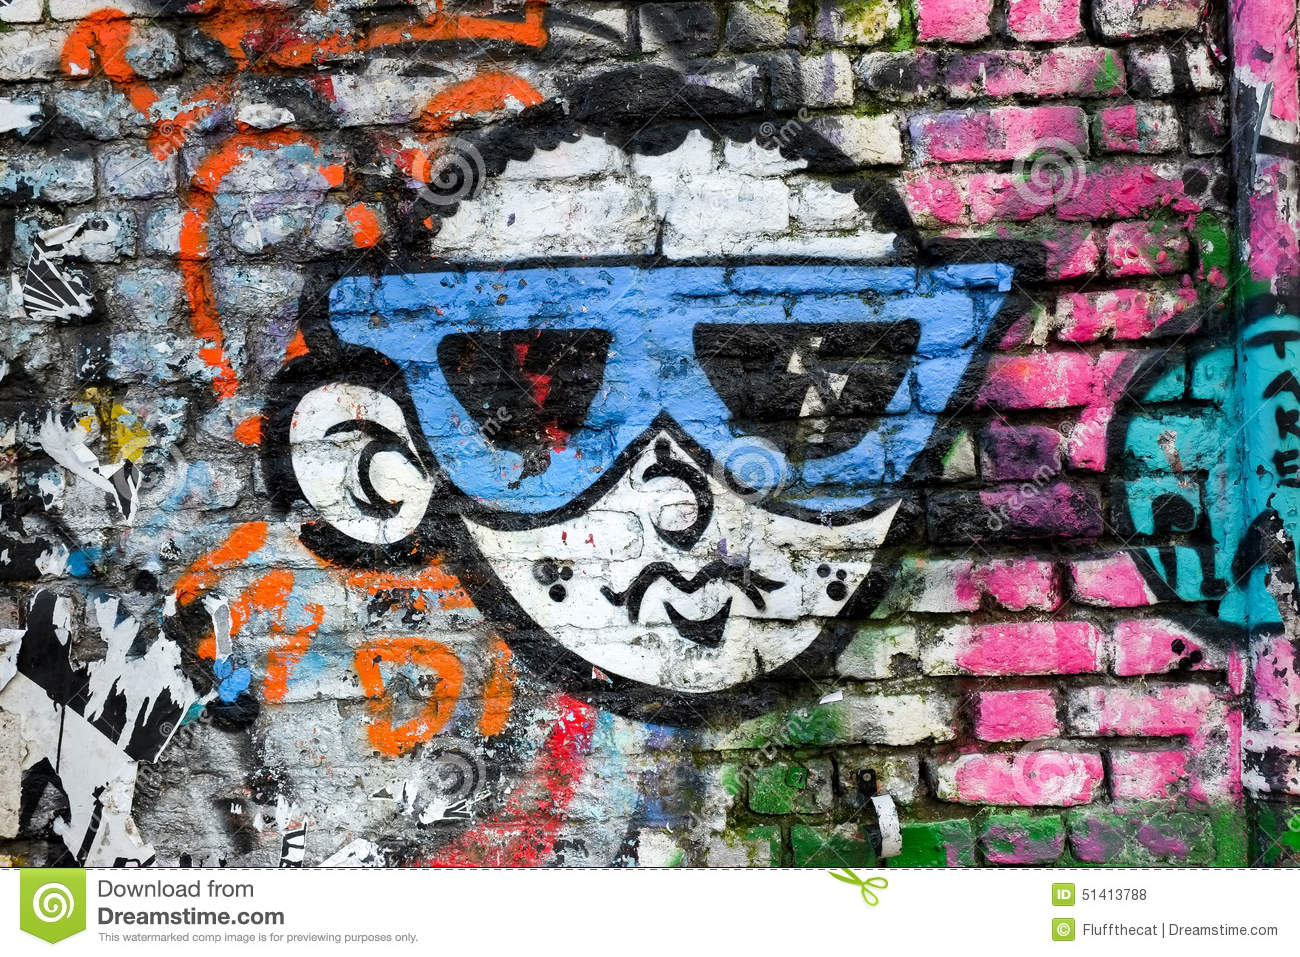 Editorial Stock Photo Cool Boy Wearing Sunglasses Graffiti Design London Uk Cartoon Looking Shoreditch Image51413788 on cartoon boy mouth